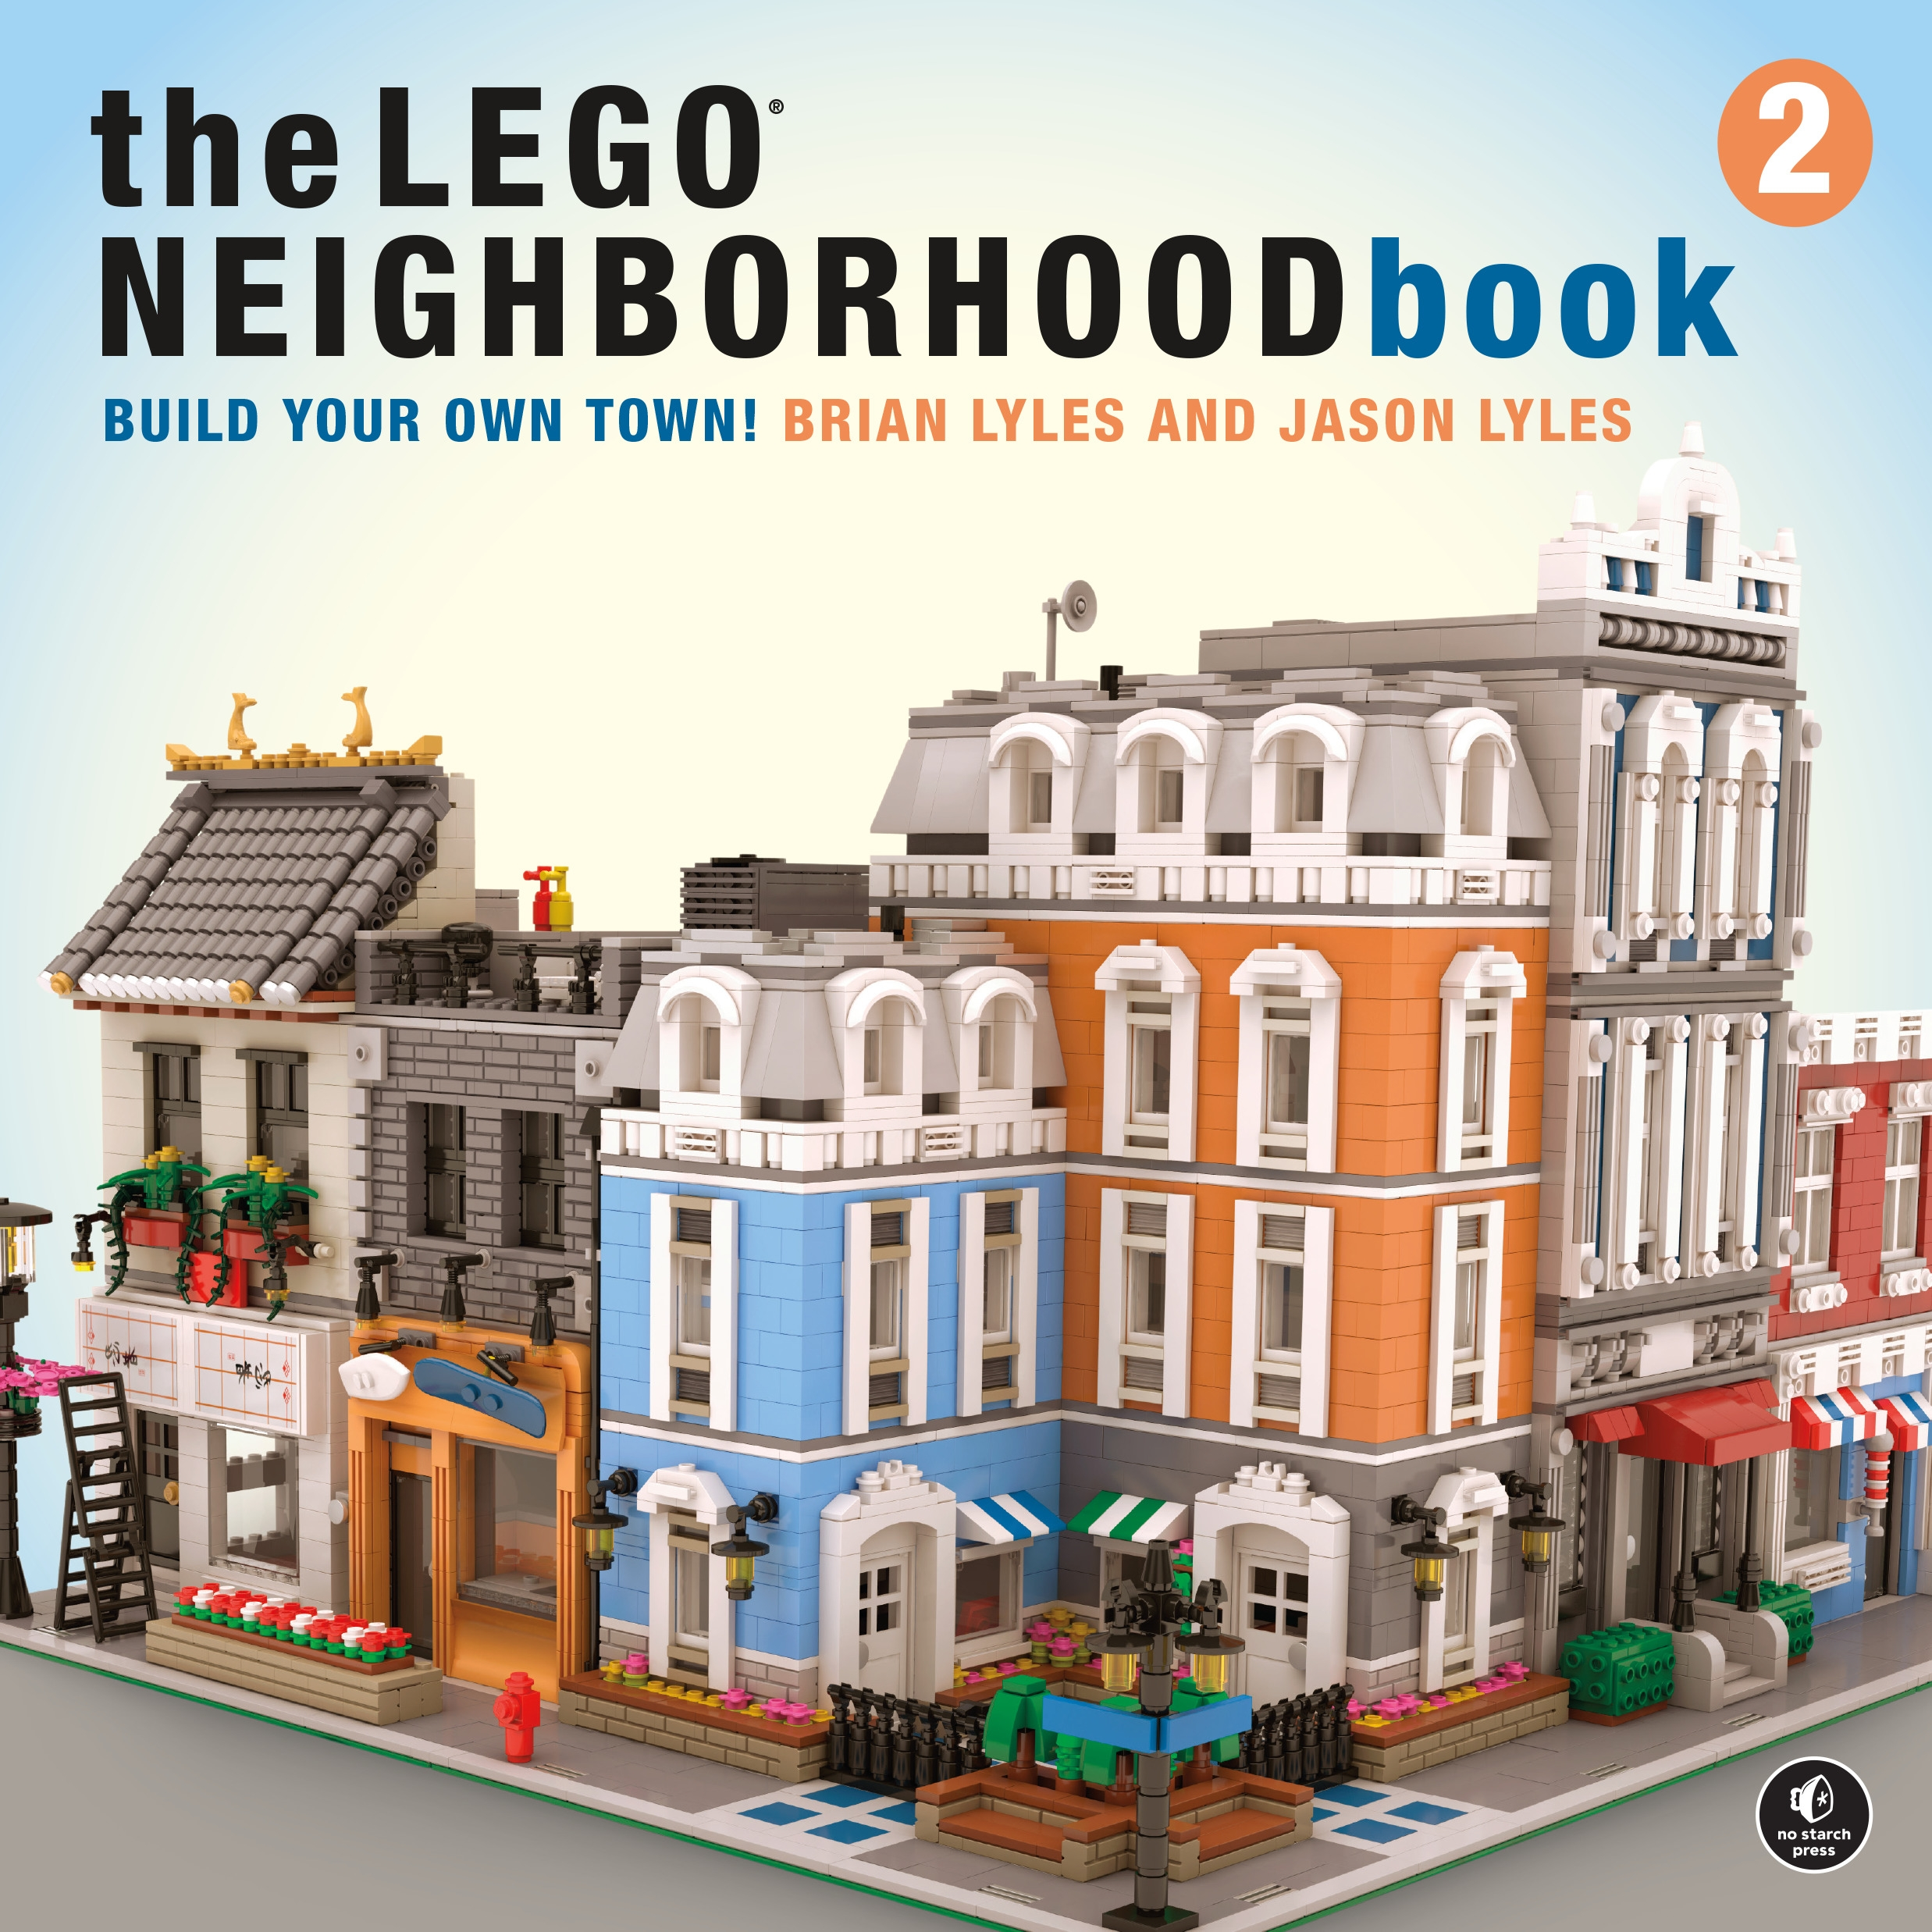 LEGO Neighborhood Book 2, The Build Your Own City! by Brian Lyles, ISBN: 9781593279301